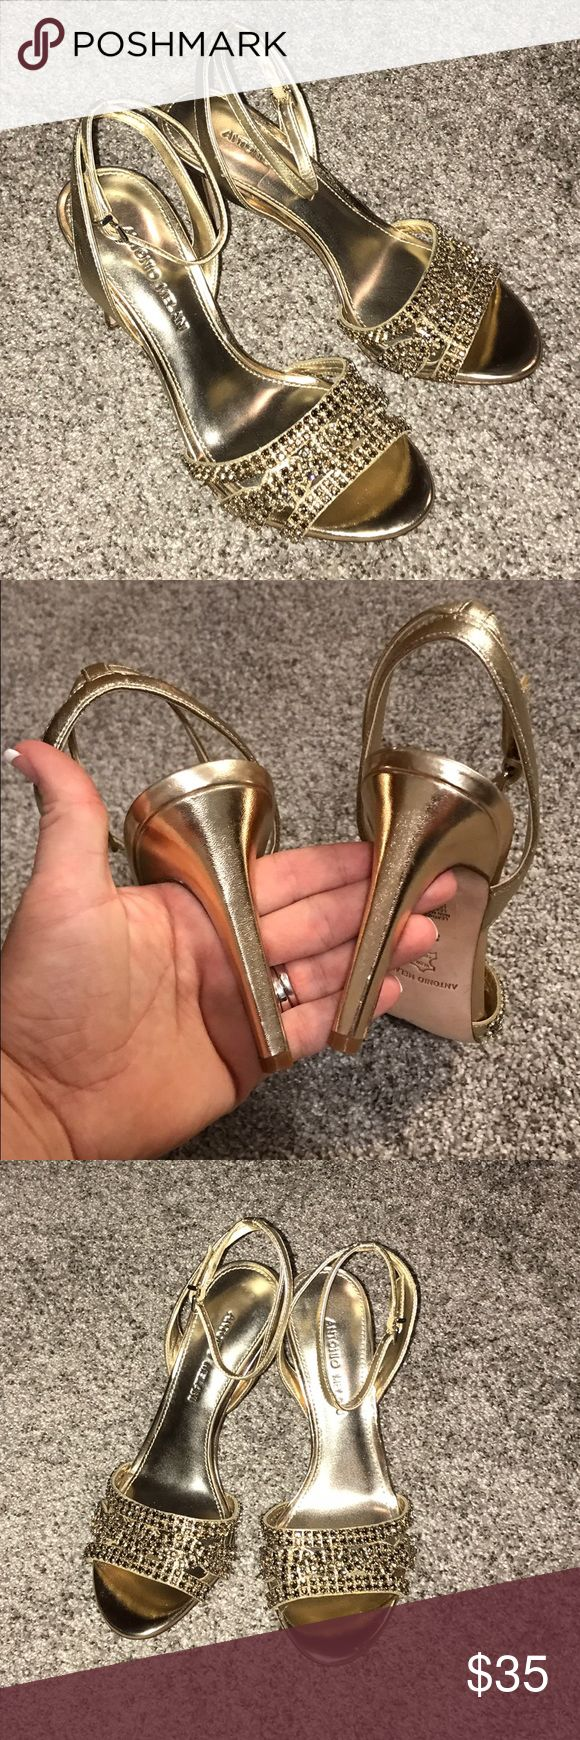 Brand new Antonio Melani gold heels Woman's Antonio Melani gold heels. These are beautiful heels new without box. Very comfortable and true to size/ ANTONIO MELANI Shoes Heels